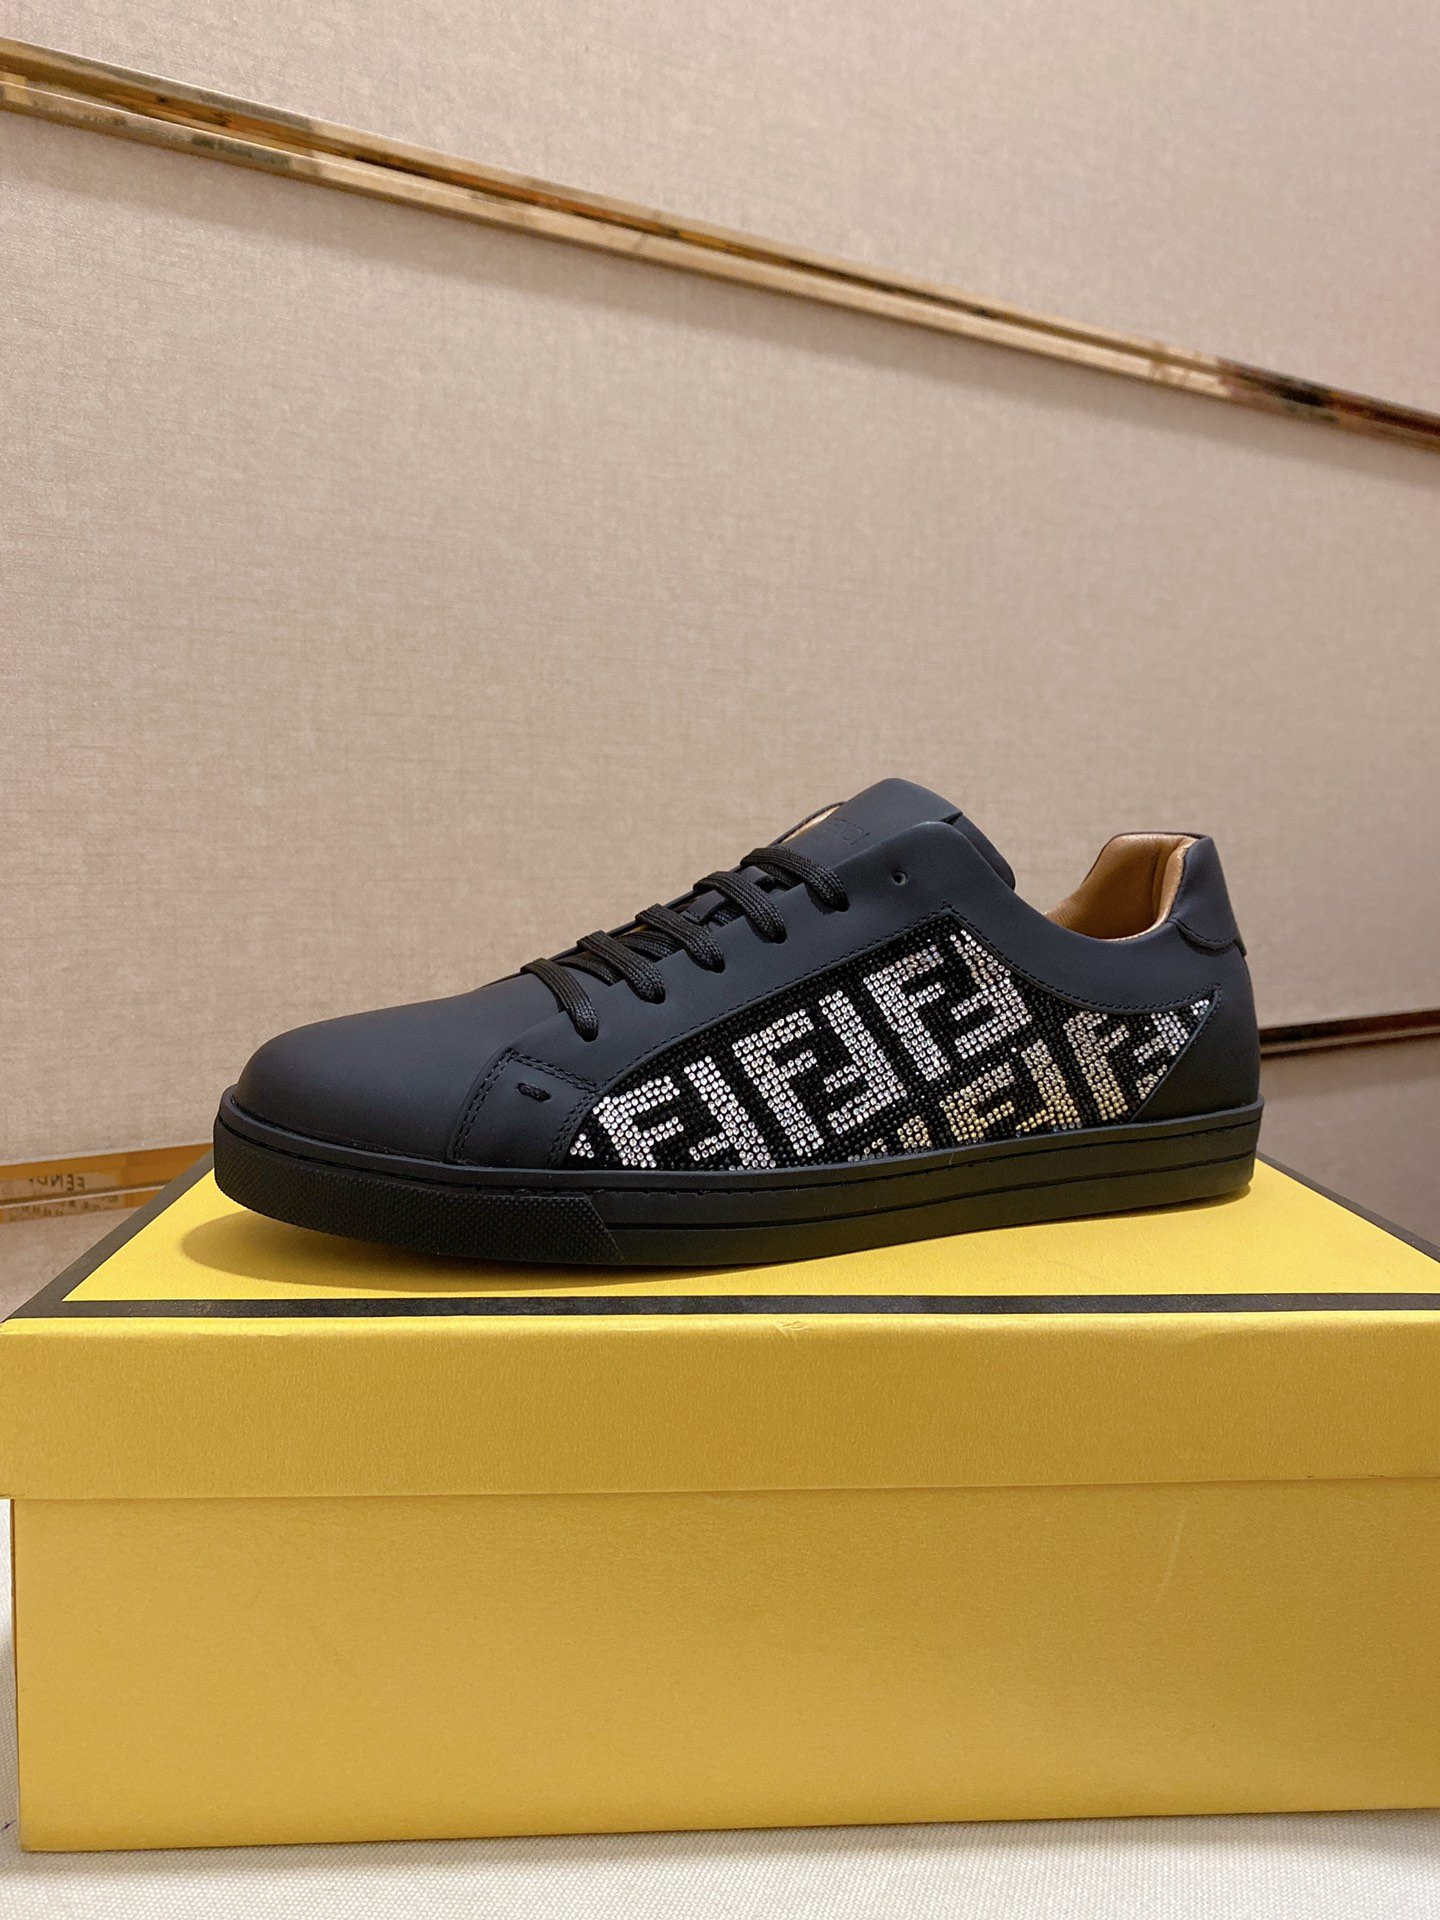 Image of FENDI Men Fashion Boots fashionable Casual leather Breathable Sneakers Running Shoes07170em